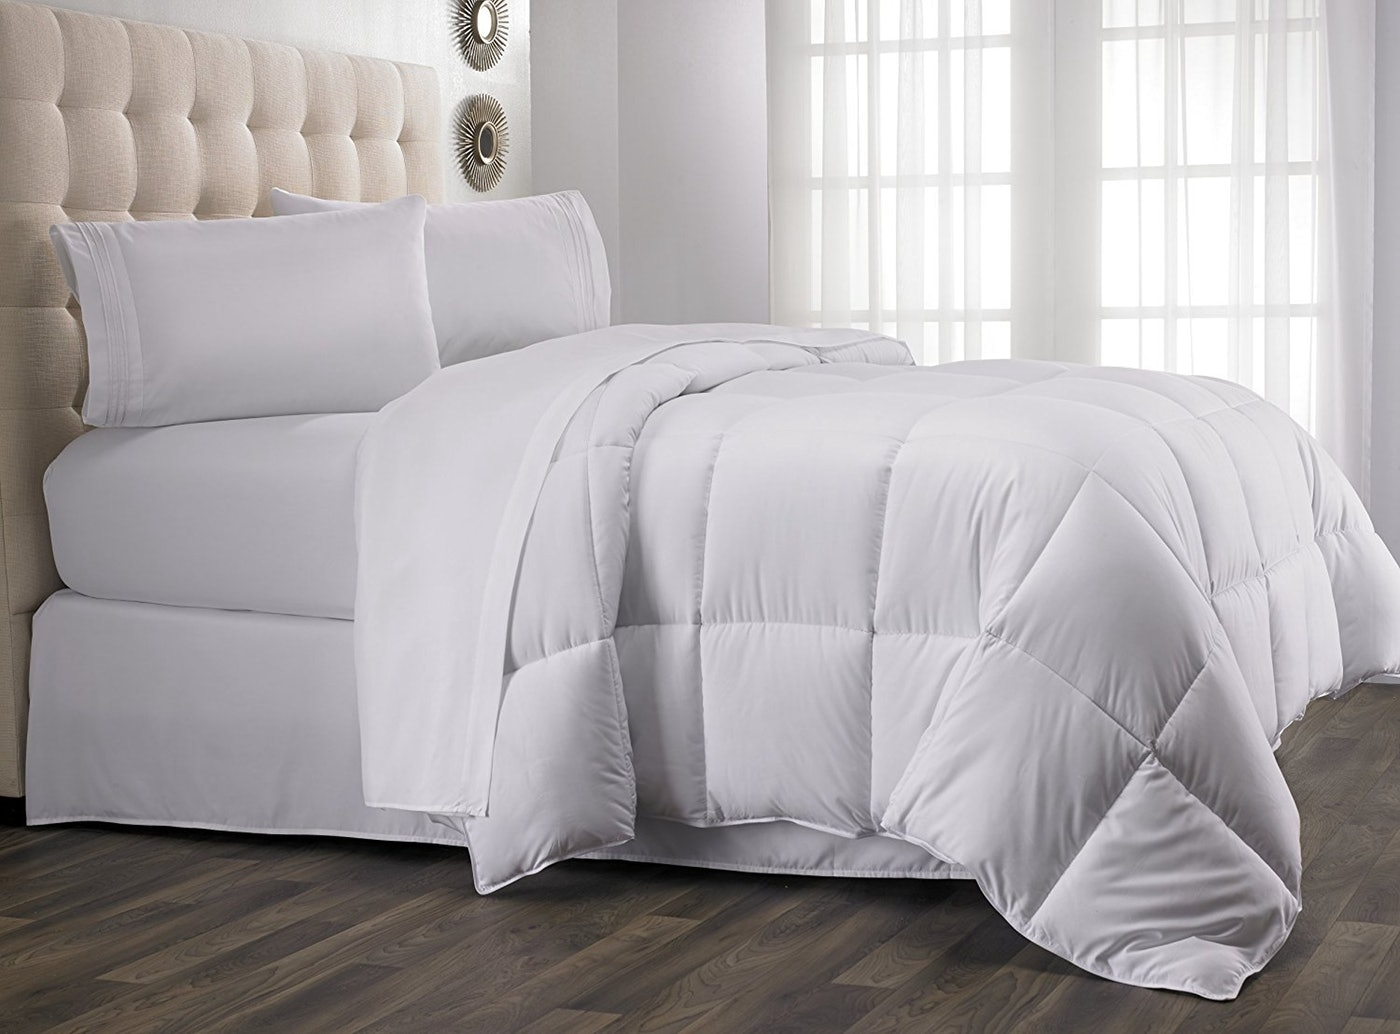 The 7 Best Comforters To Keep You Cool All Night